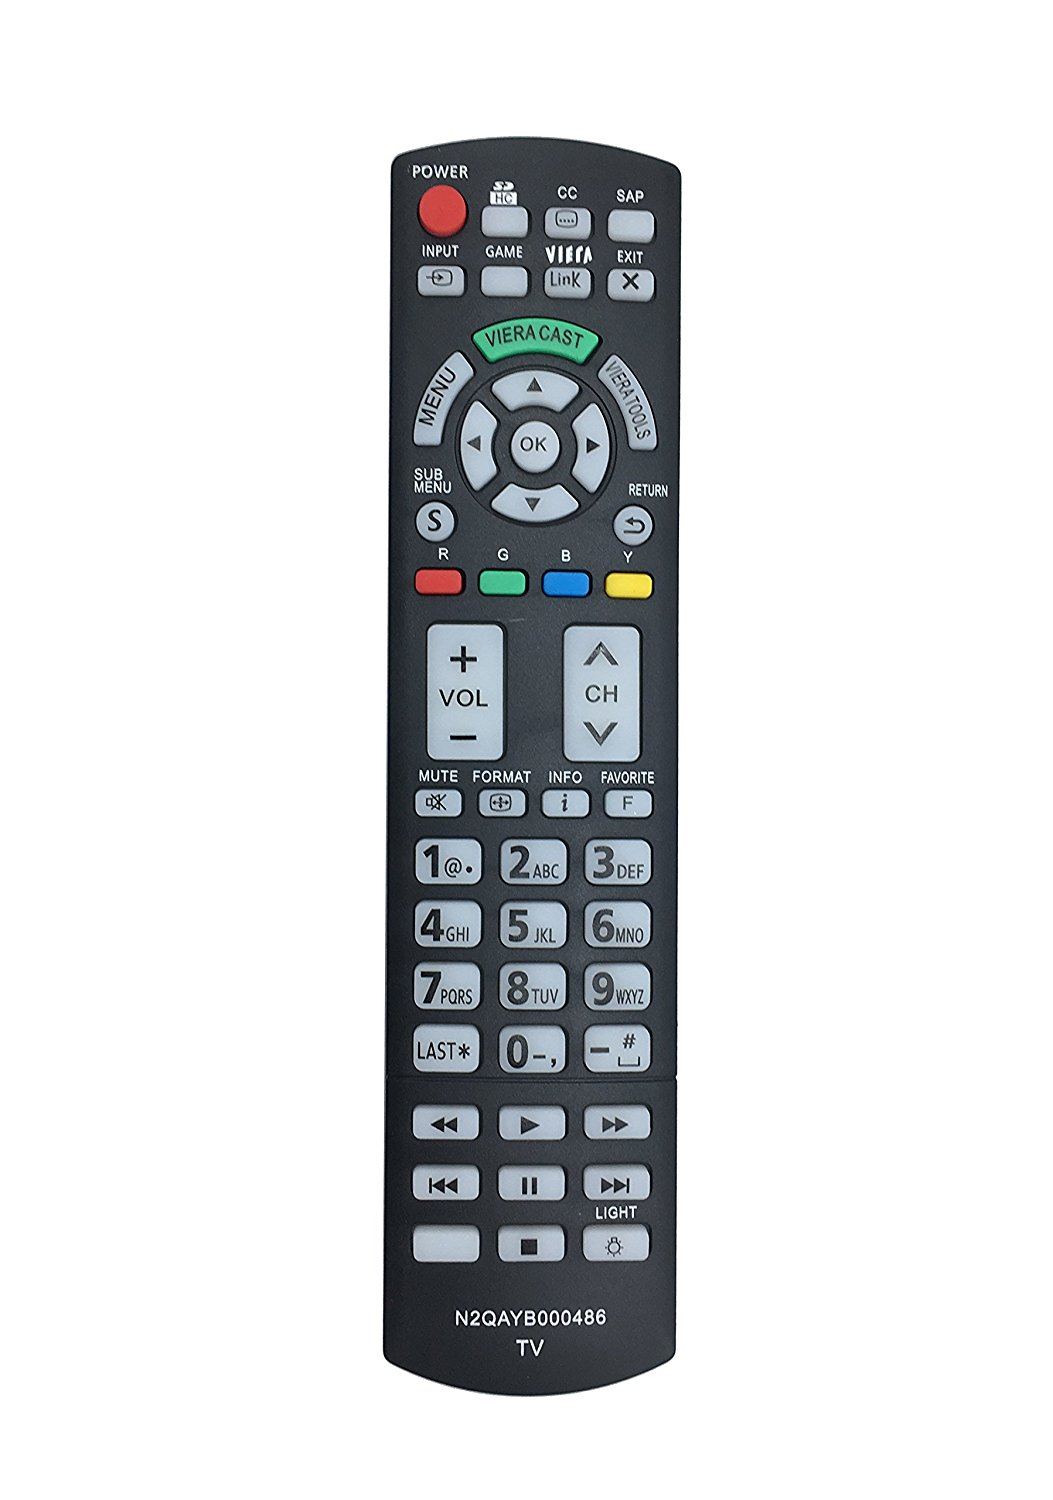 New N2QAYB000486 Replaced Remote fit for Panasonic LCD TV TC-P50VT20 TC-P58VT25 TC-P42G25 TC-P46G25 TC-46PGT24 TC-P50G20 TC-P50G25 TC-P50GT25 P50VT20 TC-P50VT25 TC-P54G20 TC-P54G25